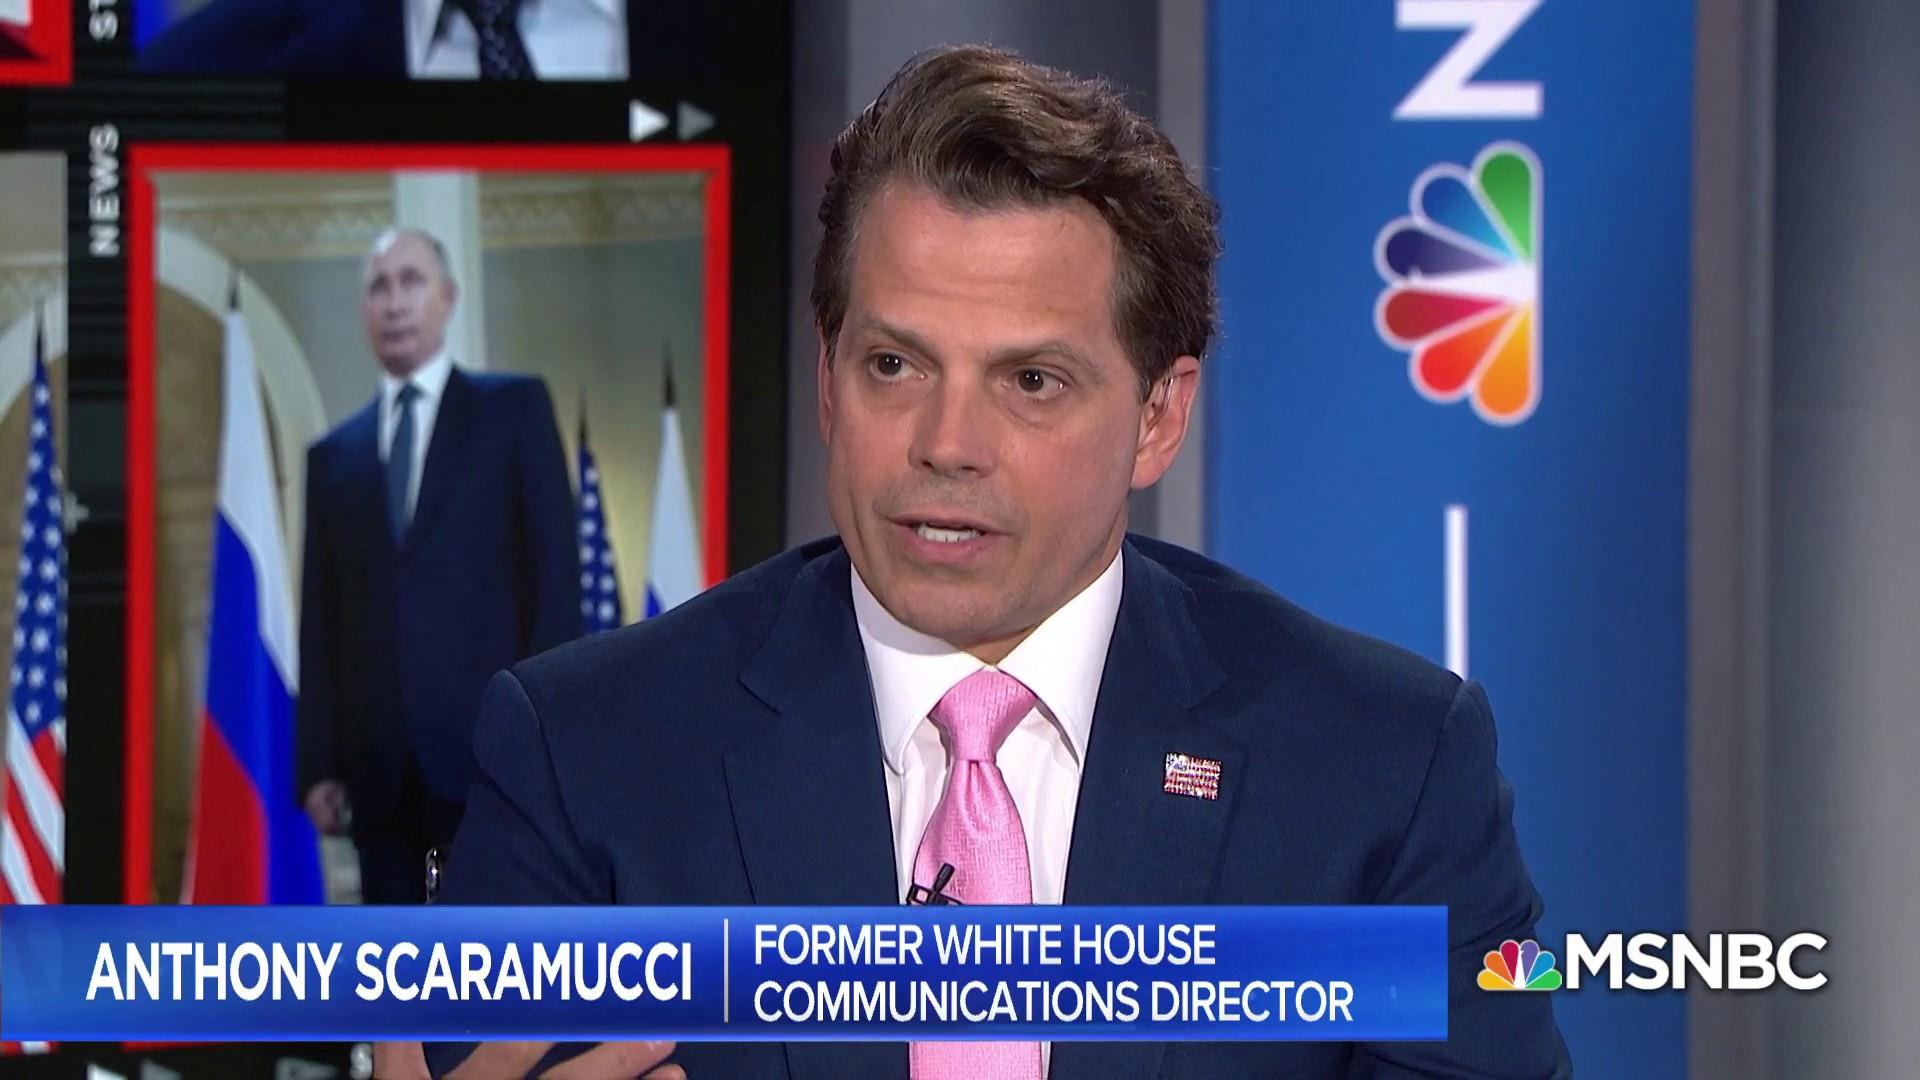 Scaramucci: Trump wants to find a way to get along with Russia